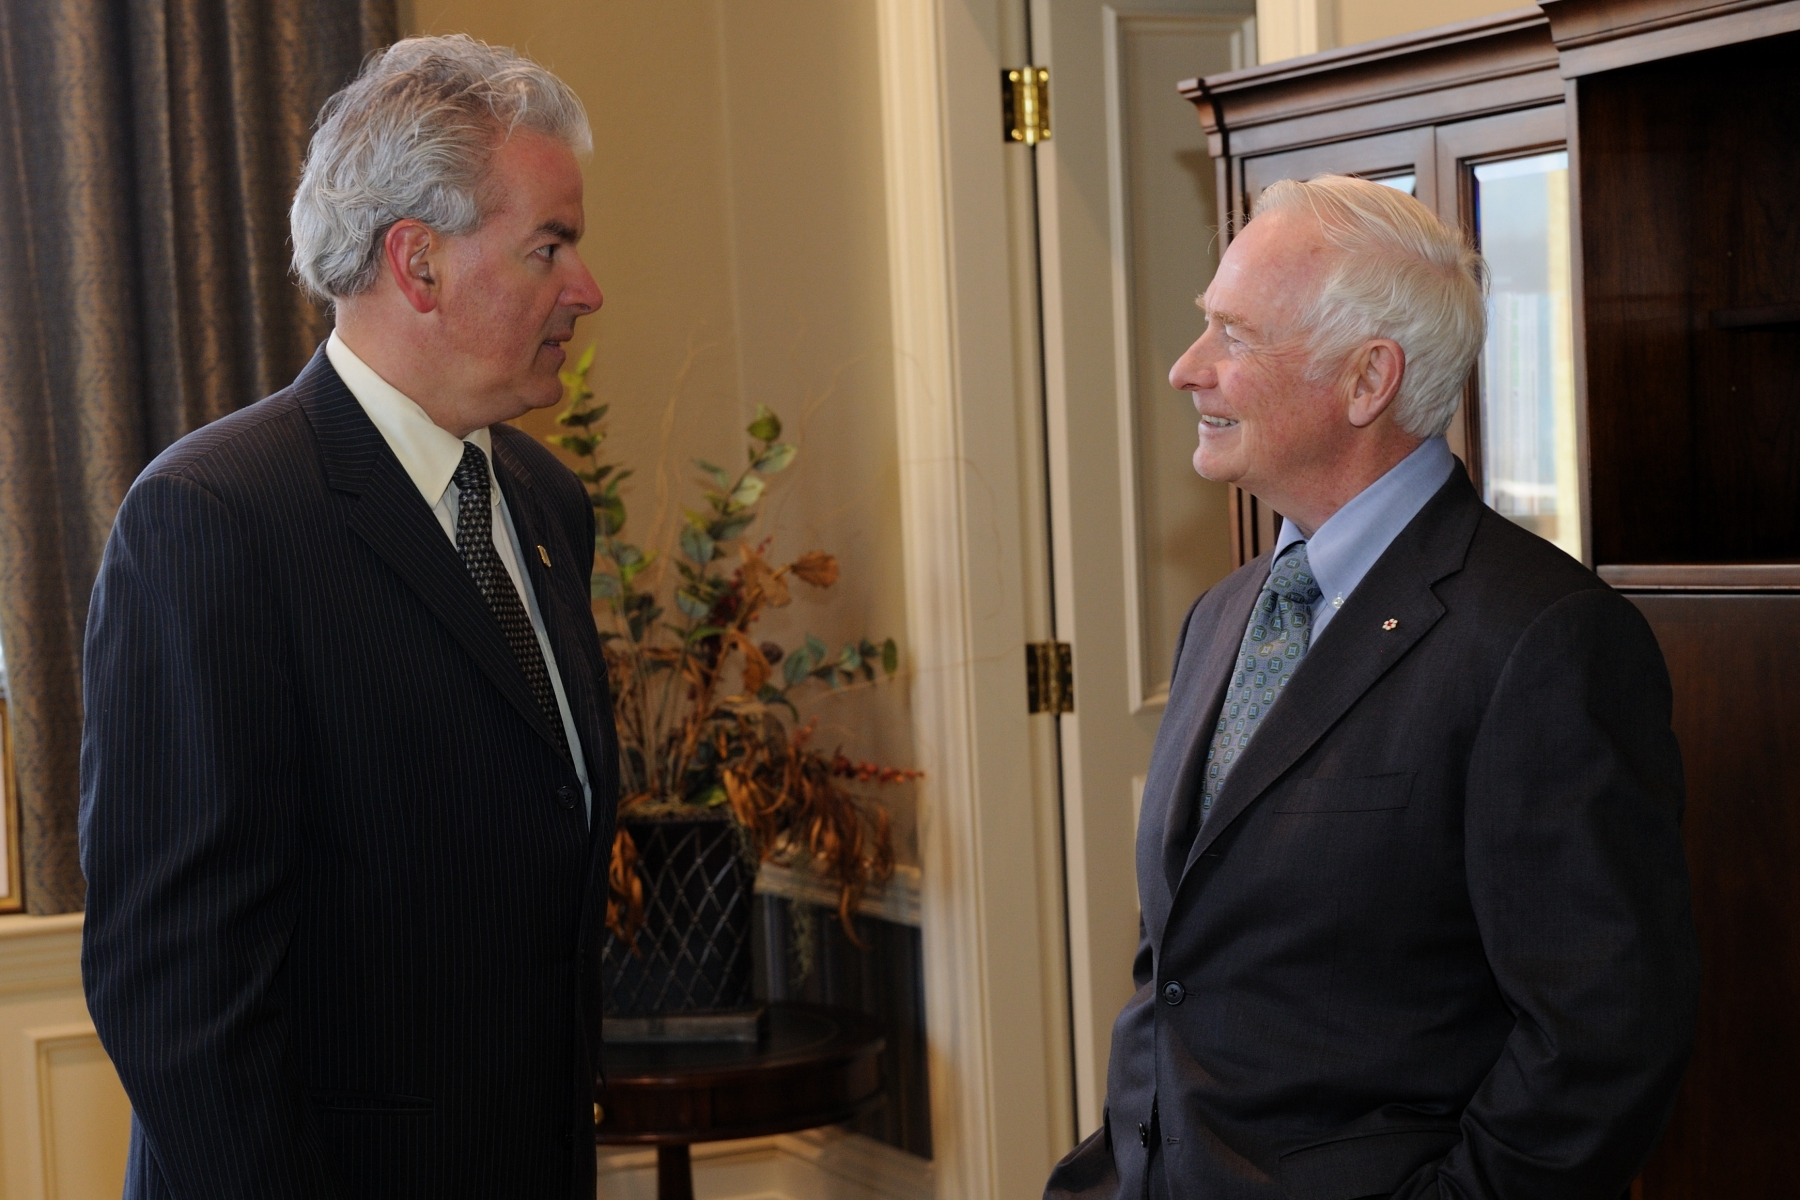 His Excellency the Right Honourable David Johnston, Governor General of Canada, conducted a one-day visit to the Eastern Townships of Quebec during which he met with His Worship Bernard Sévigny, Mayor of Sherbrooke.